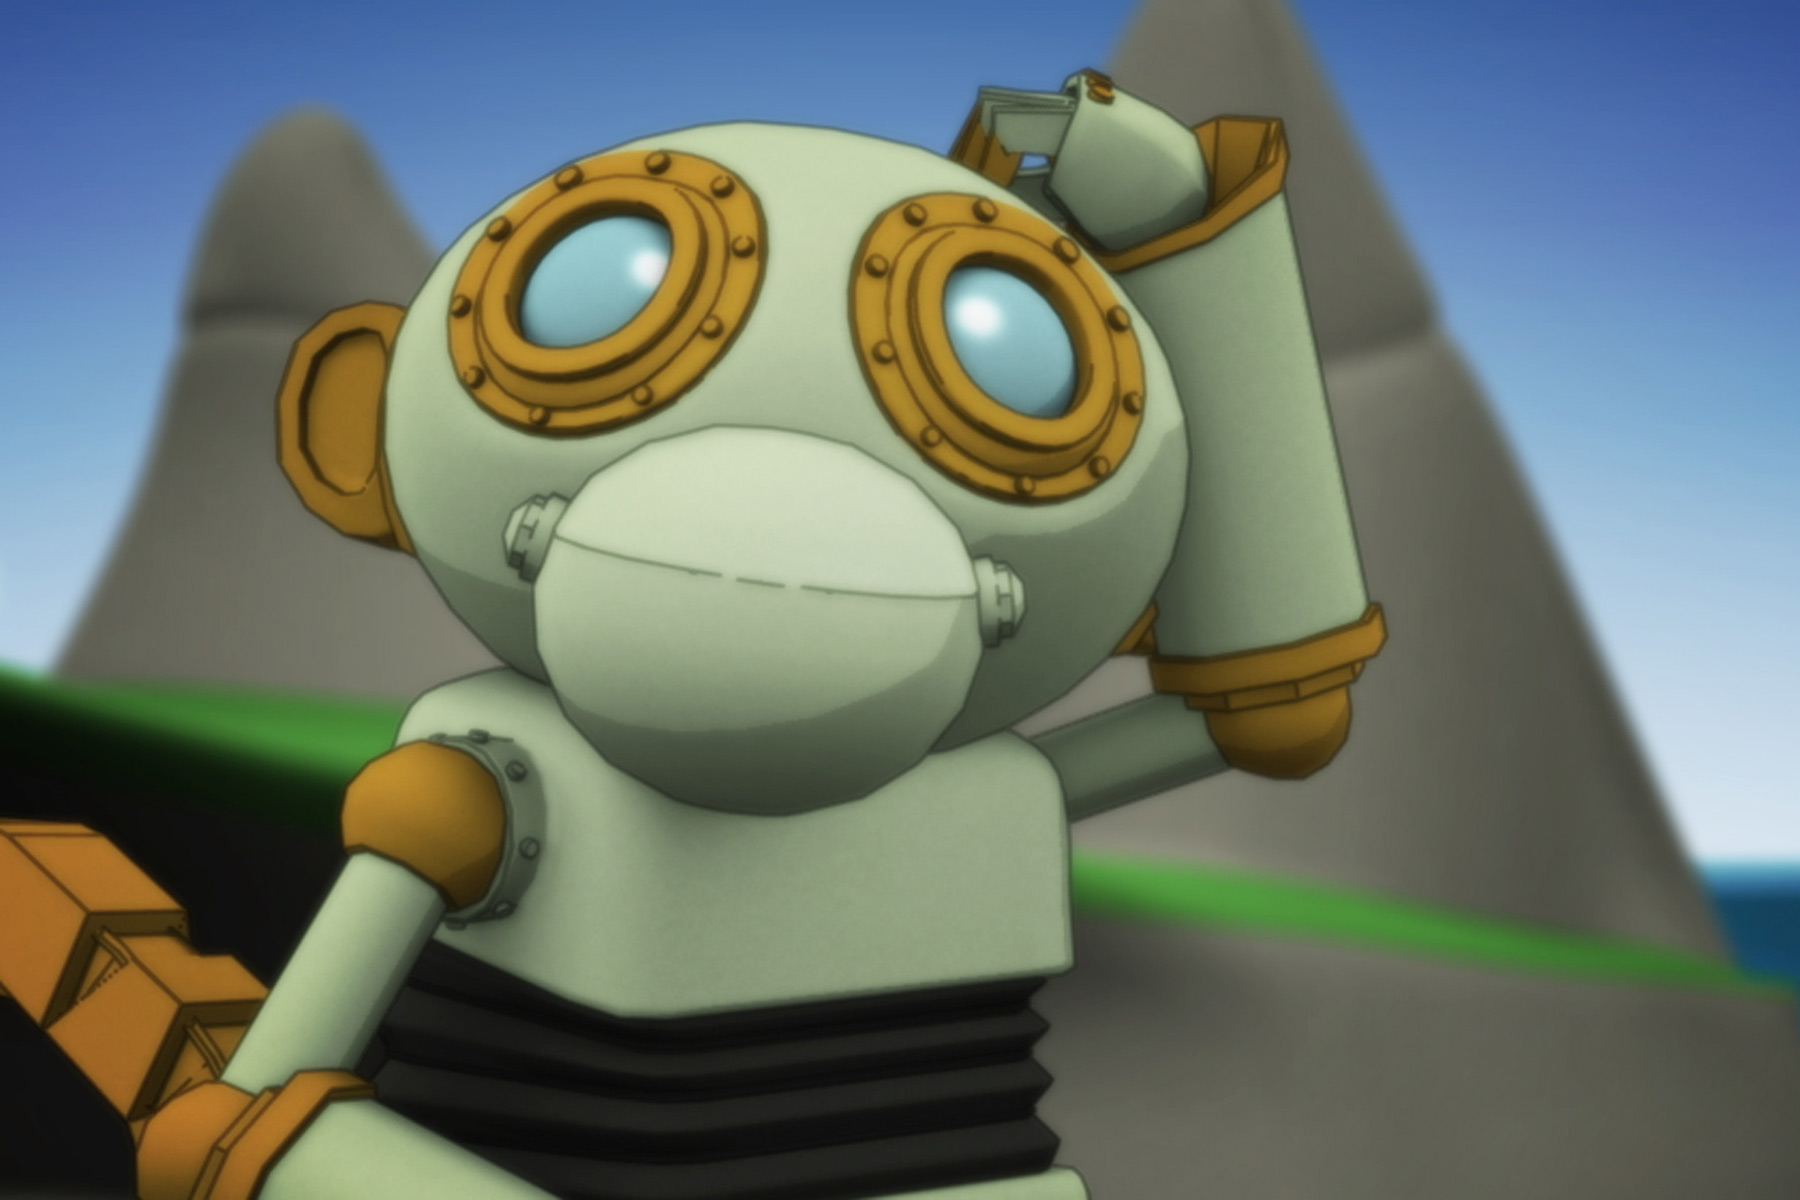 All the characters completely rigged and animated in a 3D environment. Cookie being the easiest - He is made of machinery!